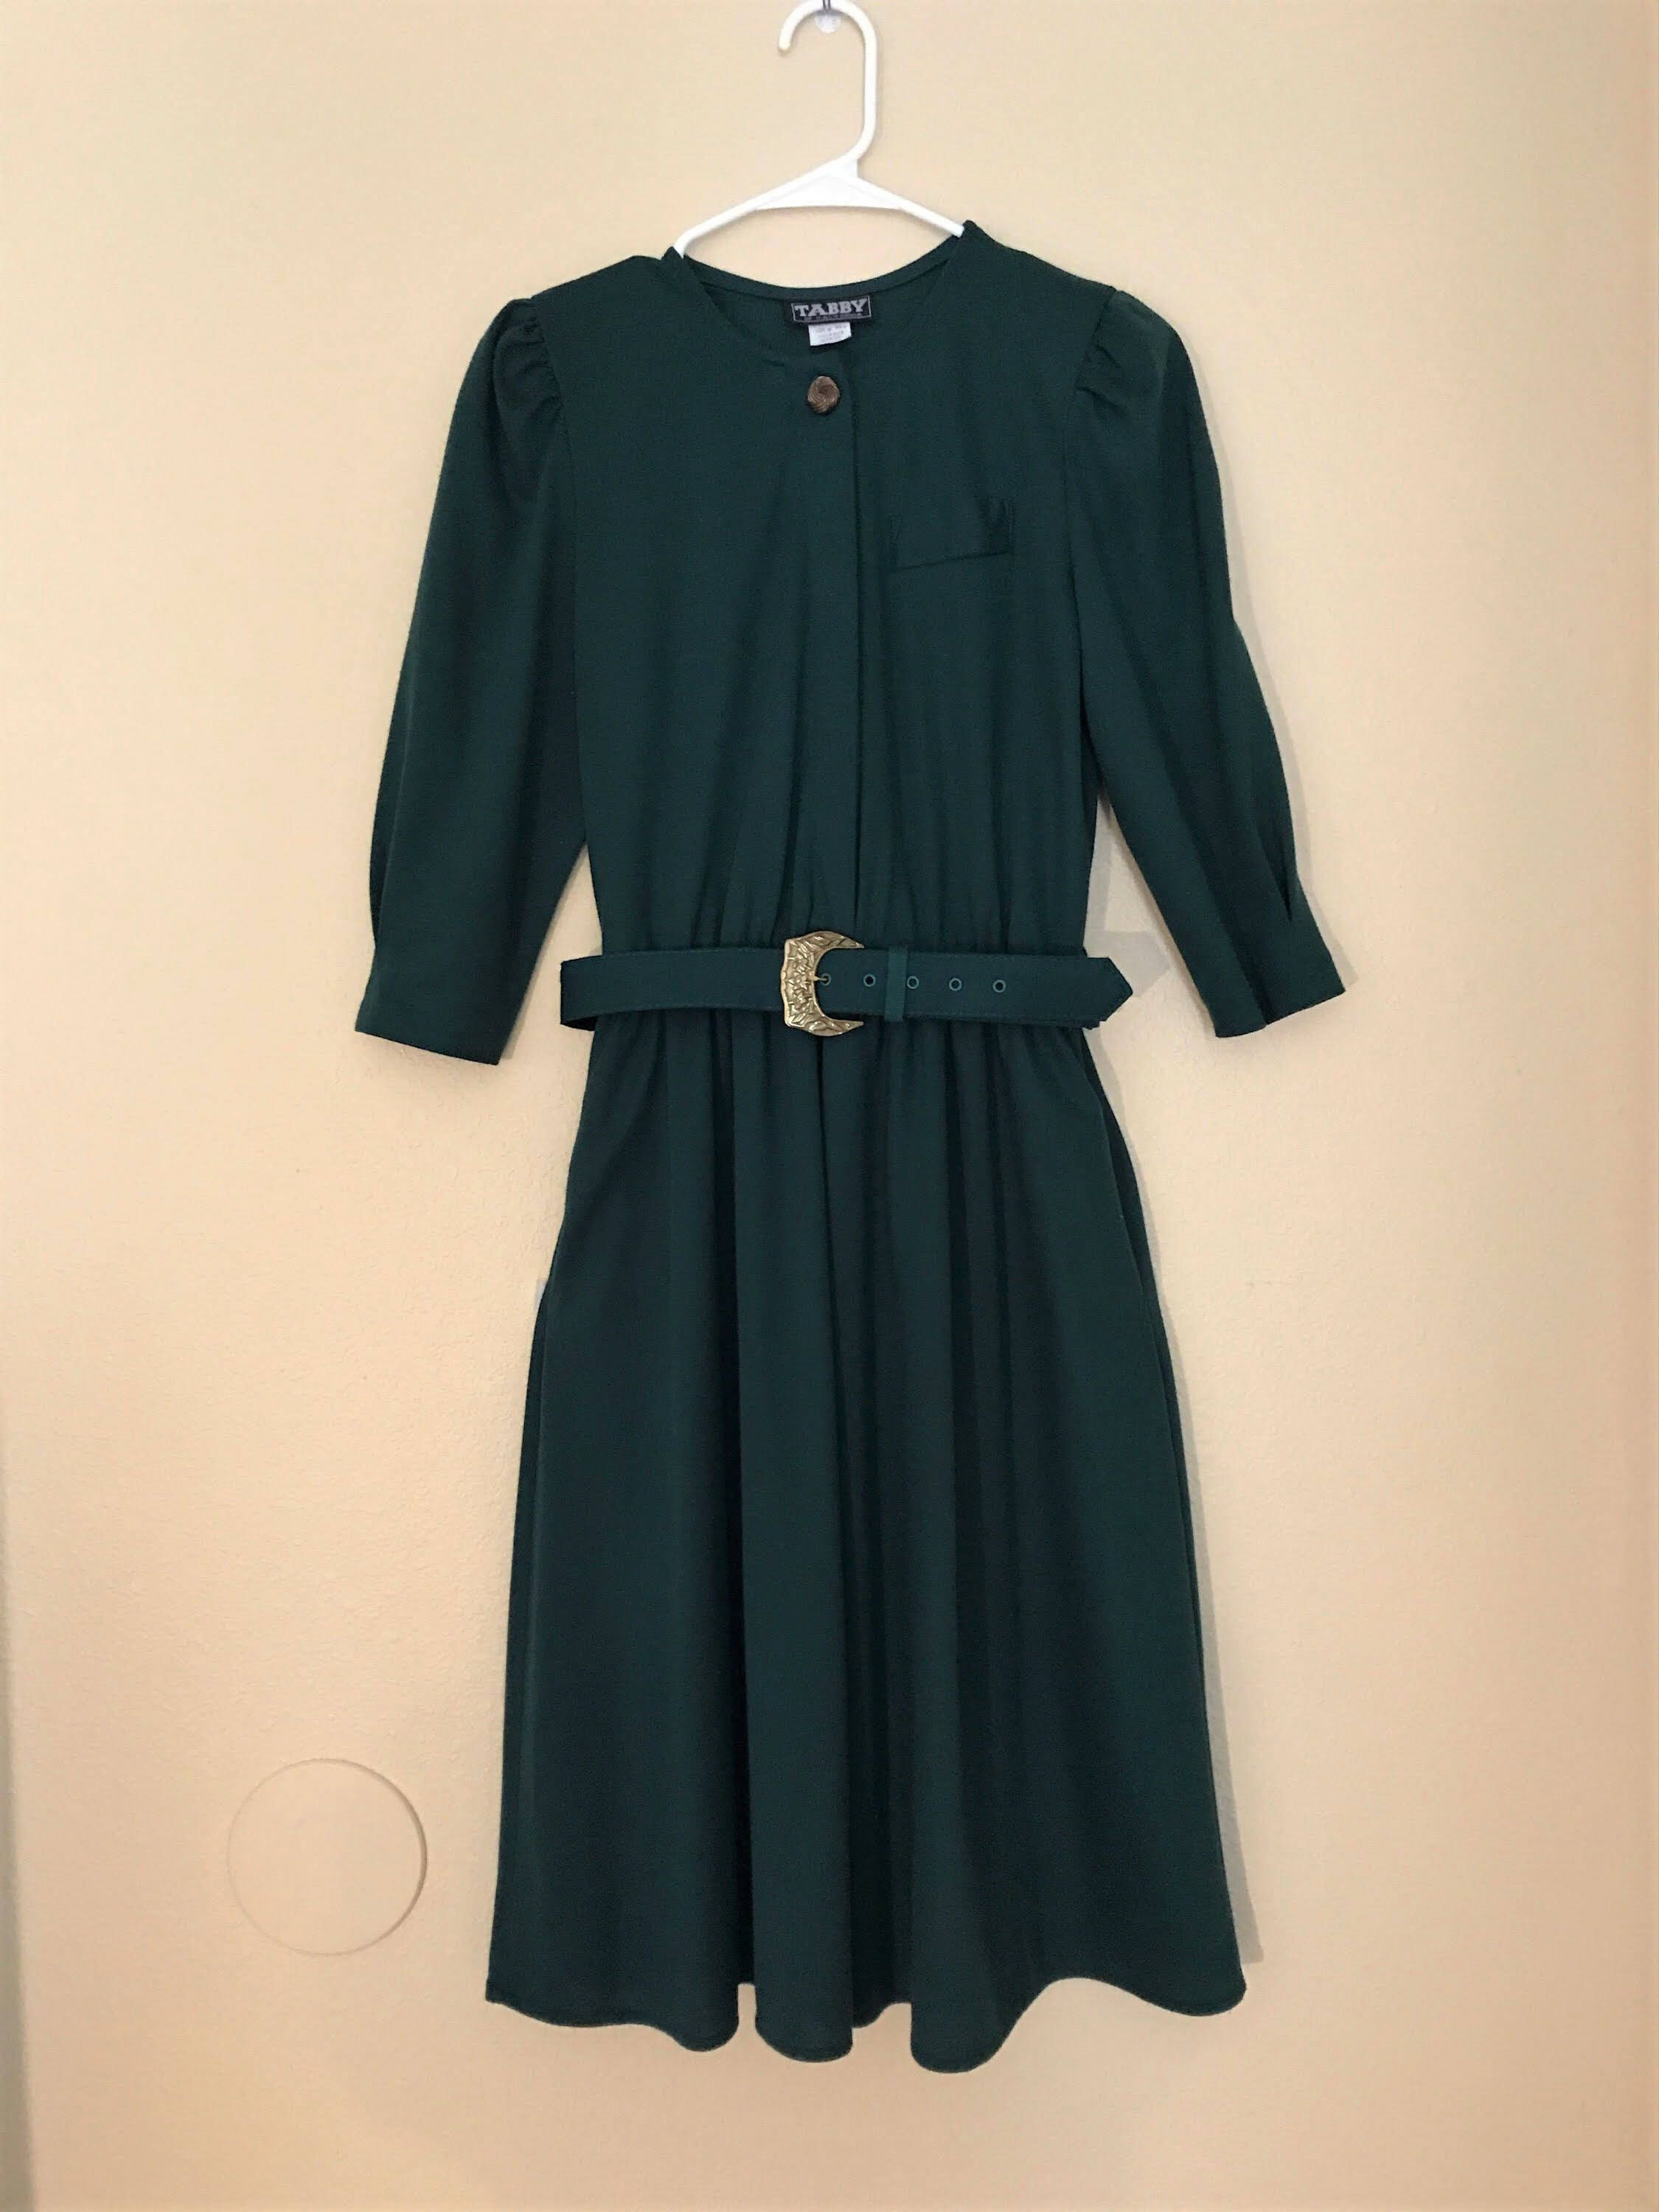 Womenus us emerald green party dress sylisting